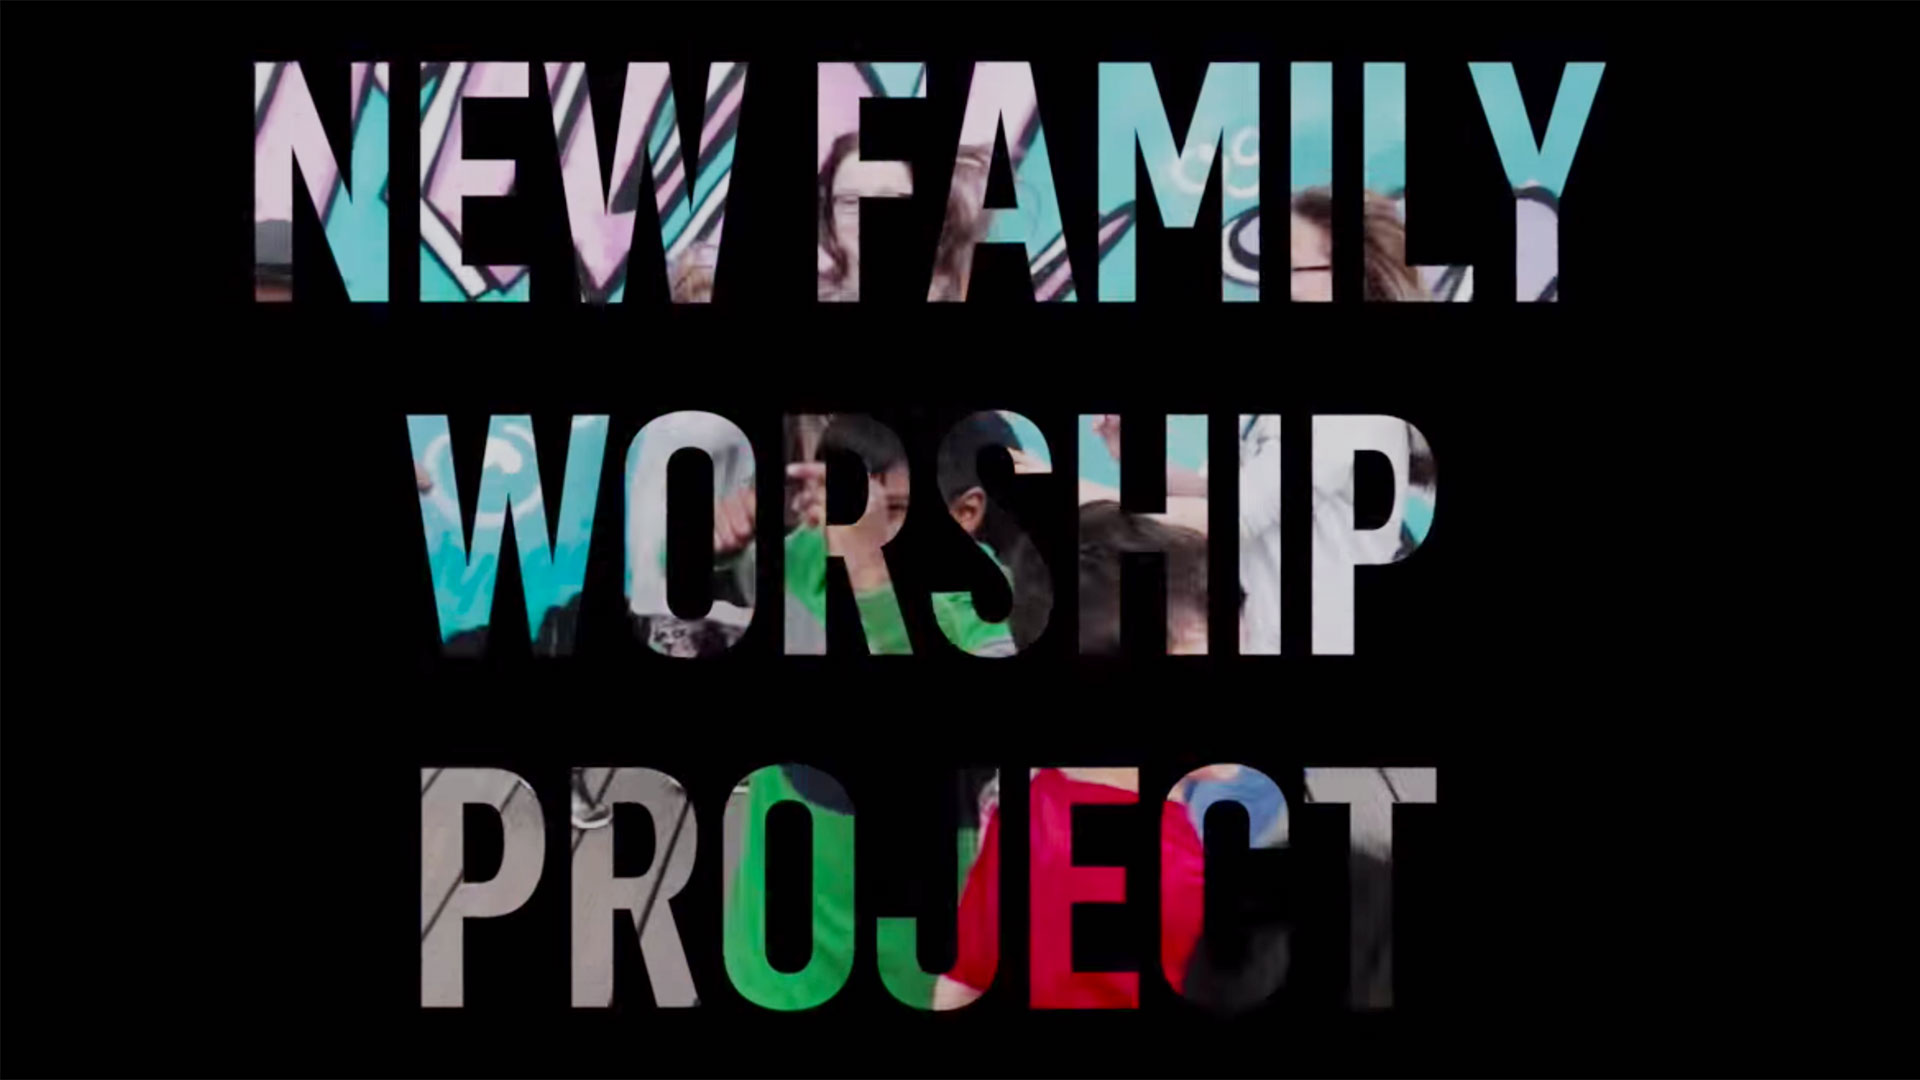 Elim Sound announce new family worship album project